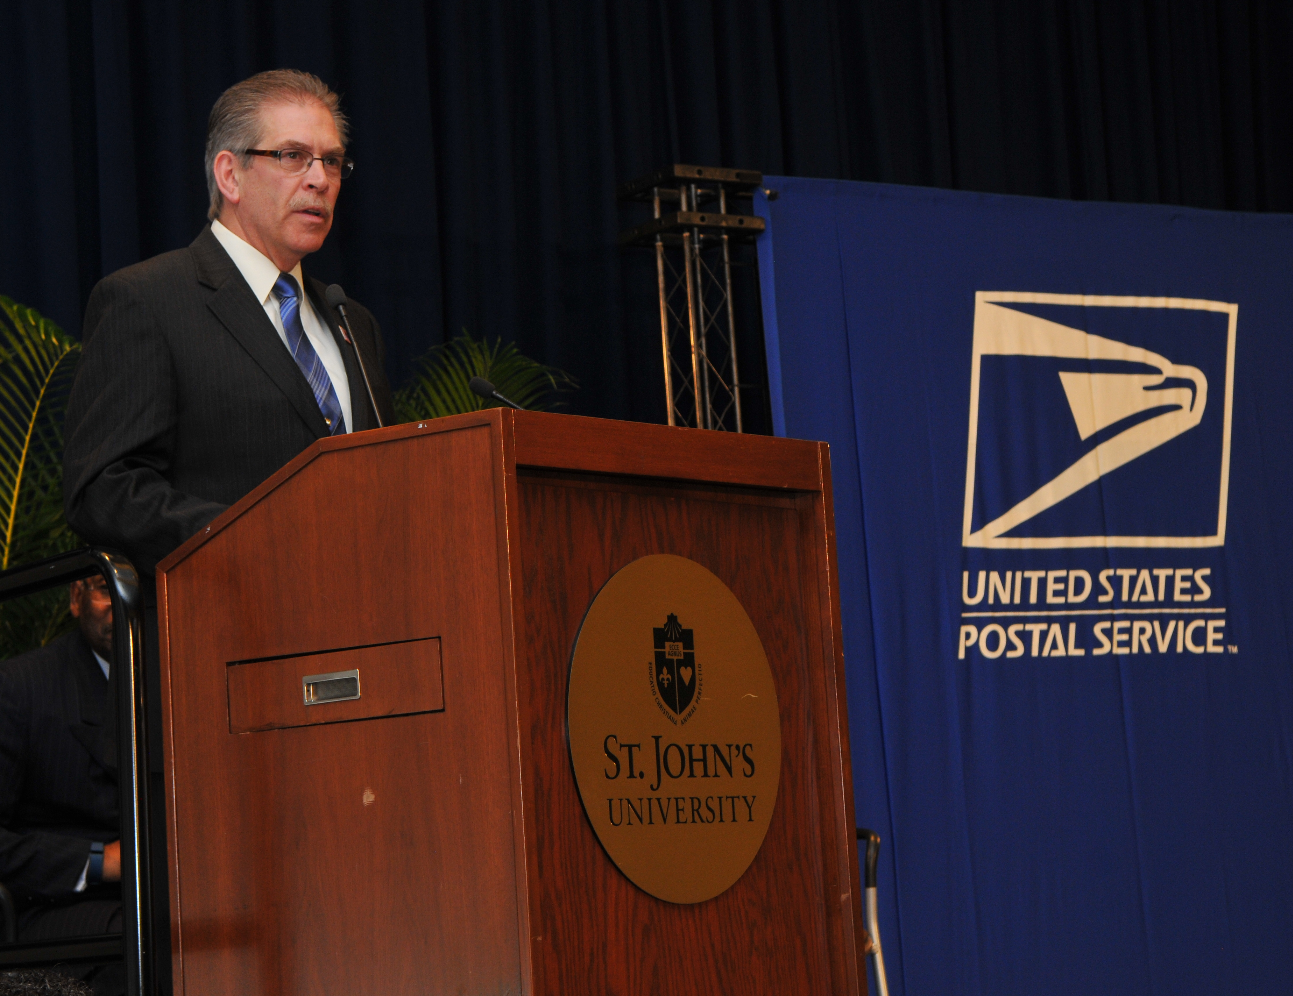 Richard P. Uluski, USPS Vice President Northeastern Area Operations